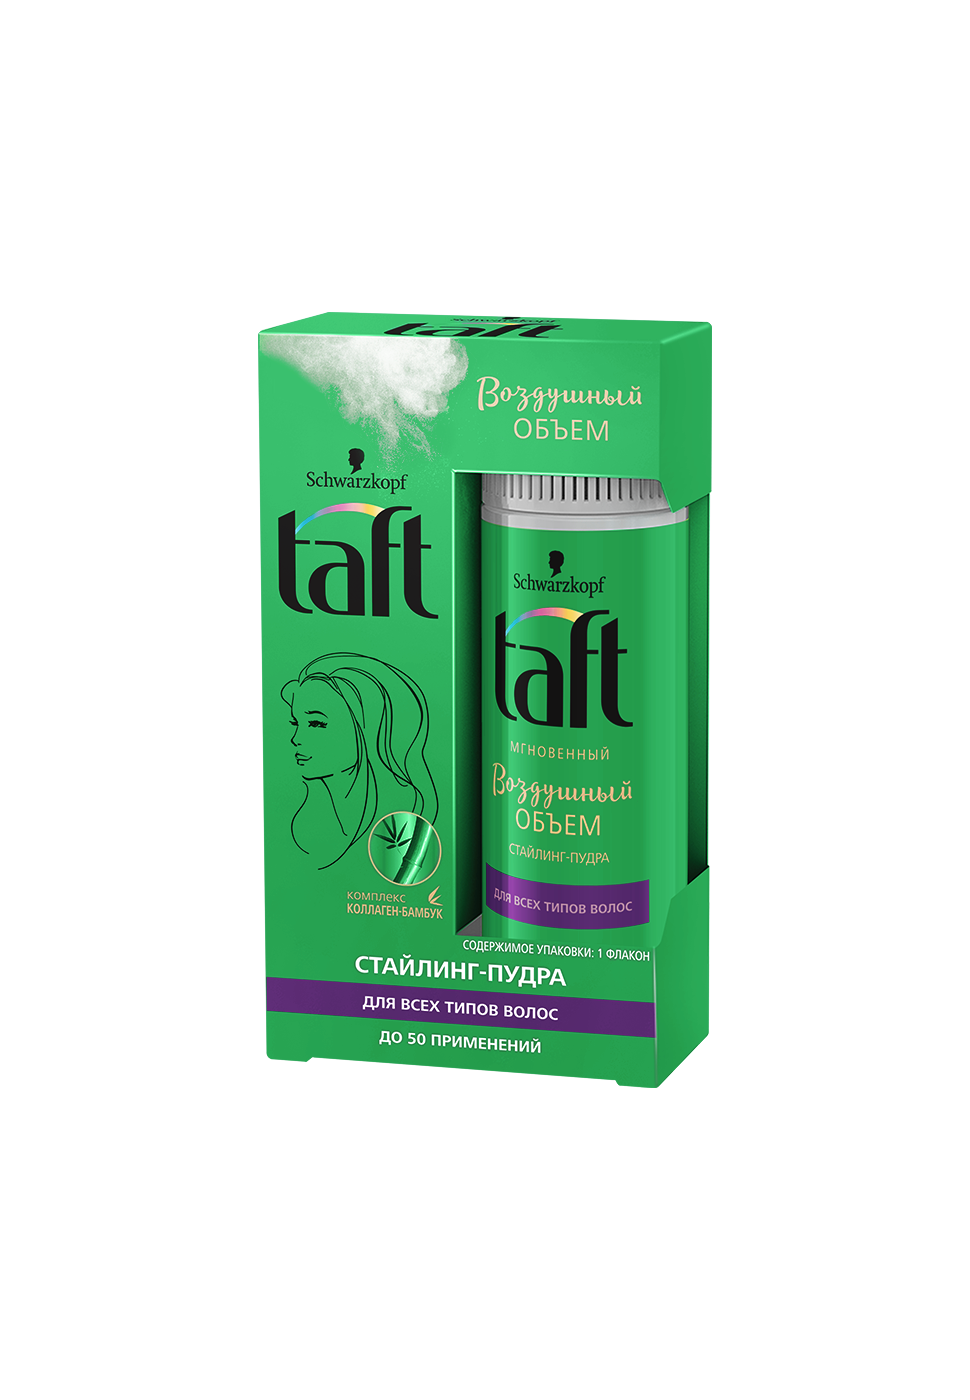 taft_ru_volume_instant_powder_970x1400